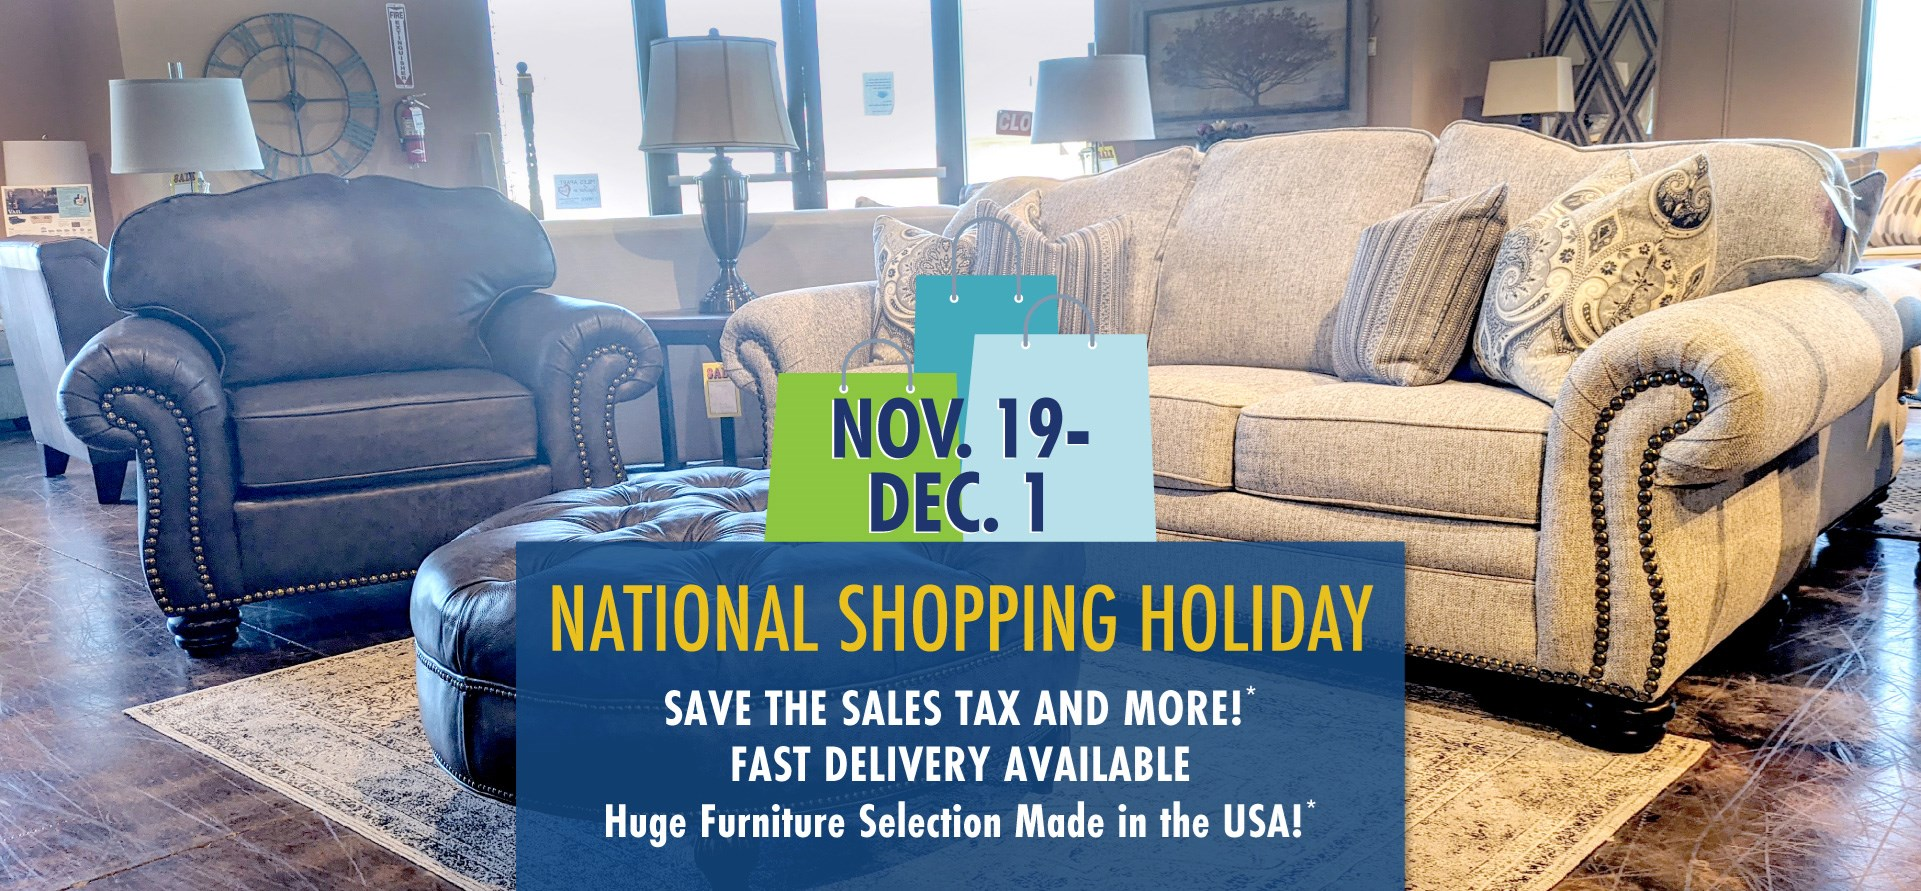 National Shopping Holiday at Mueller Furniture